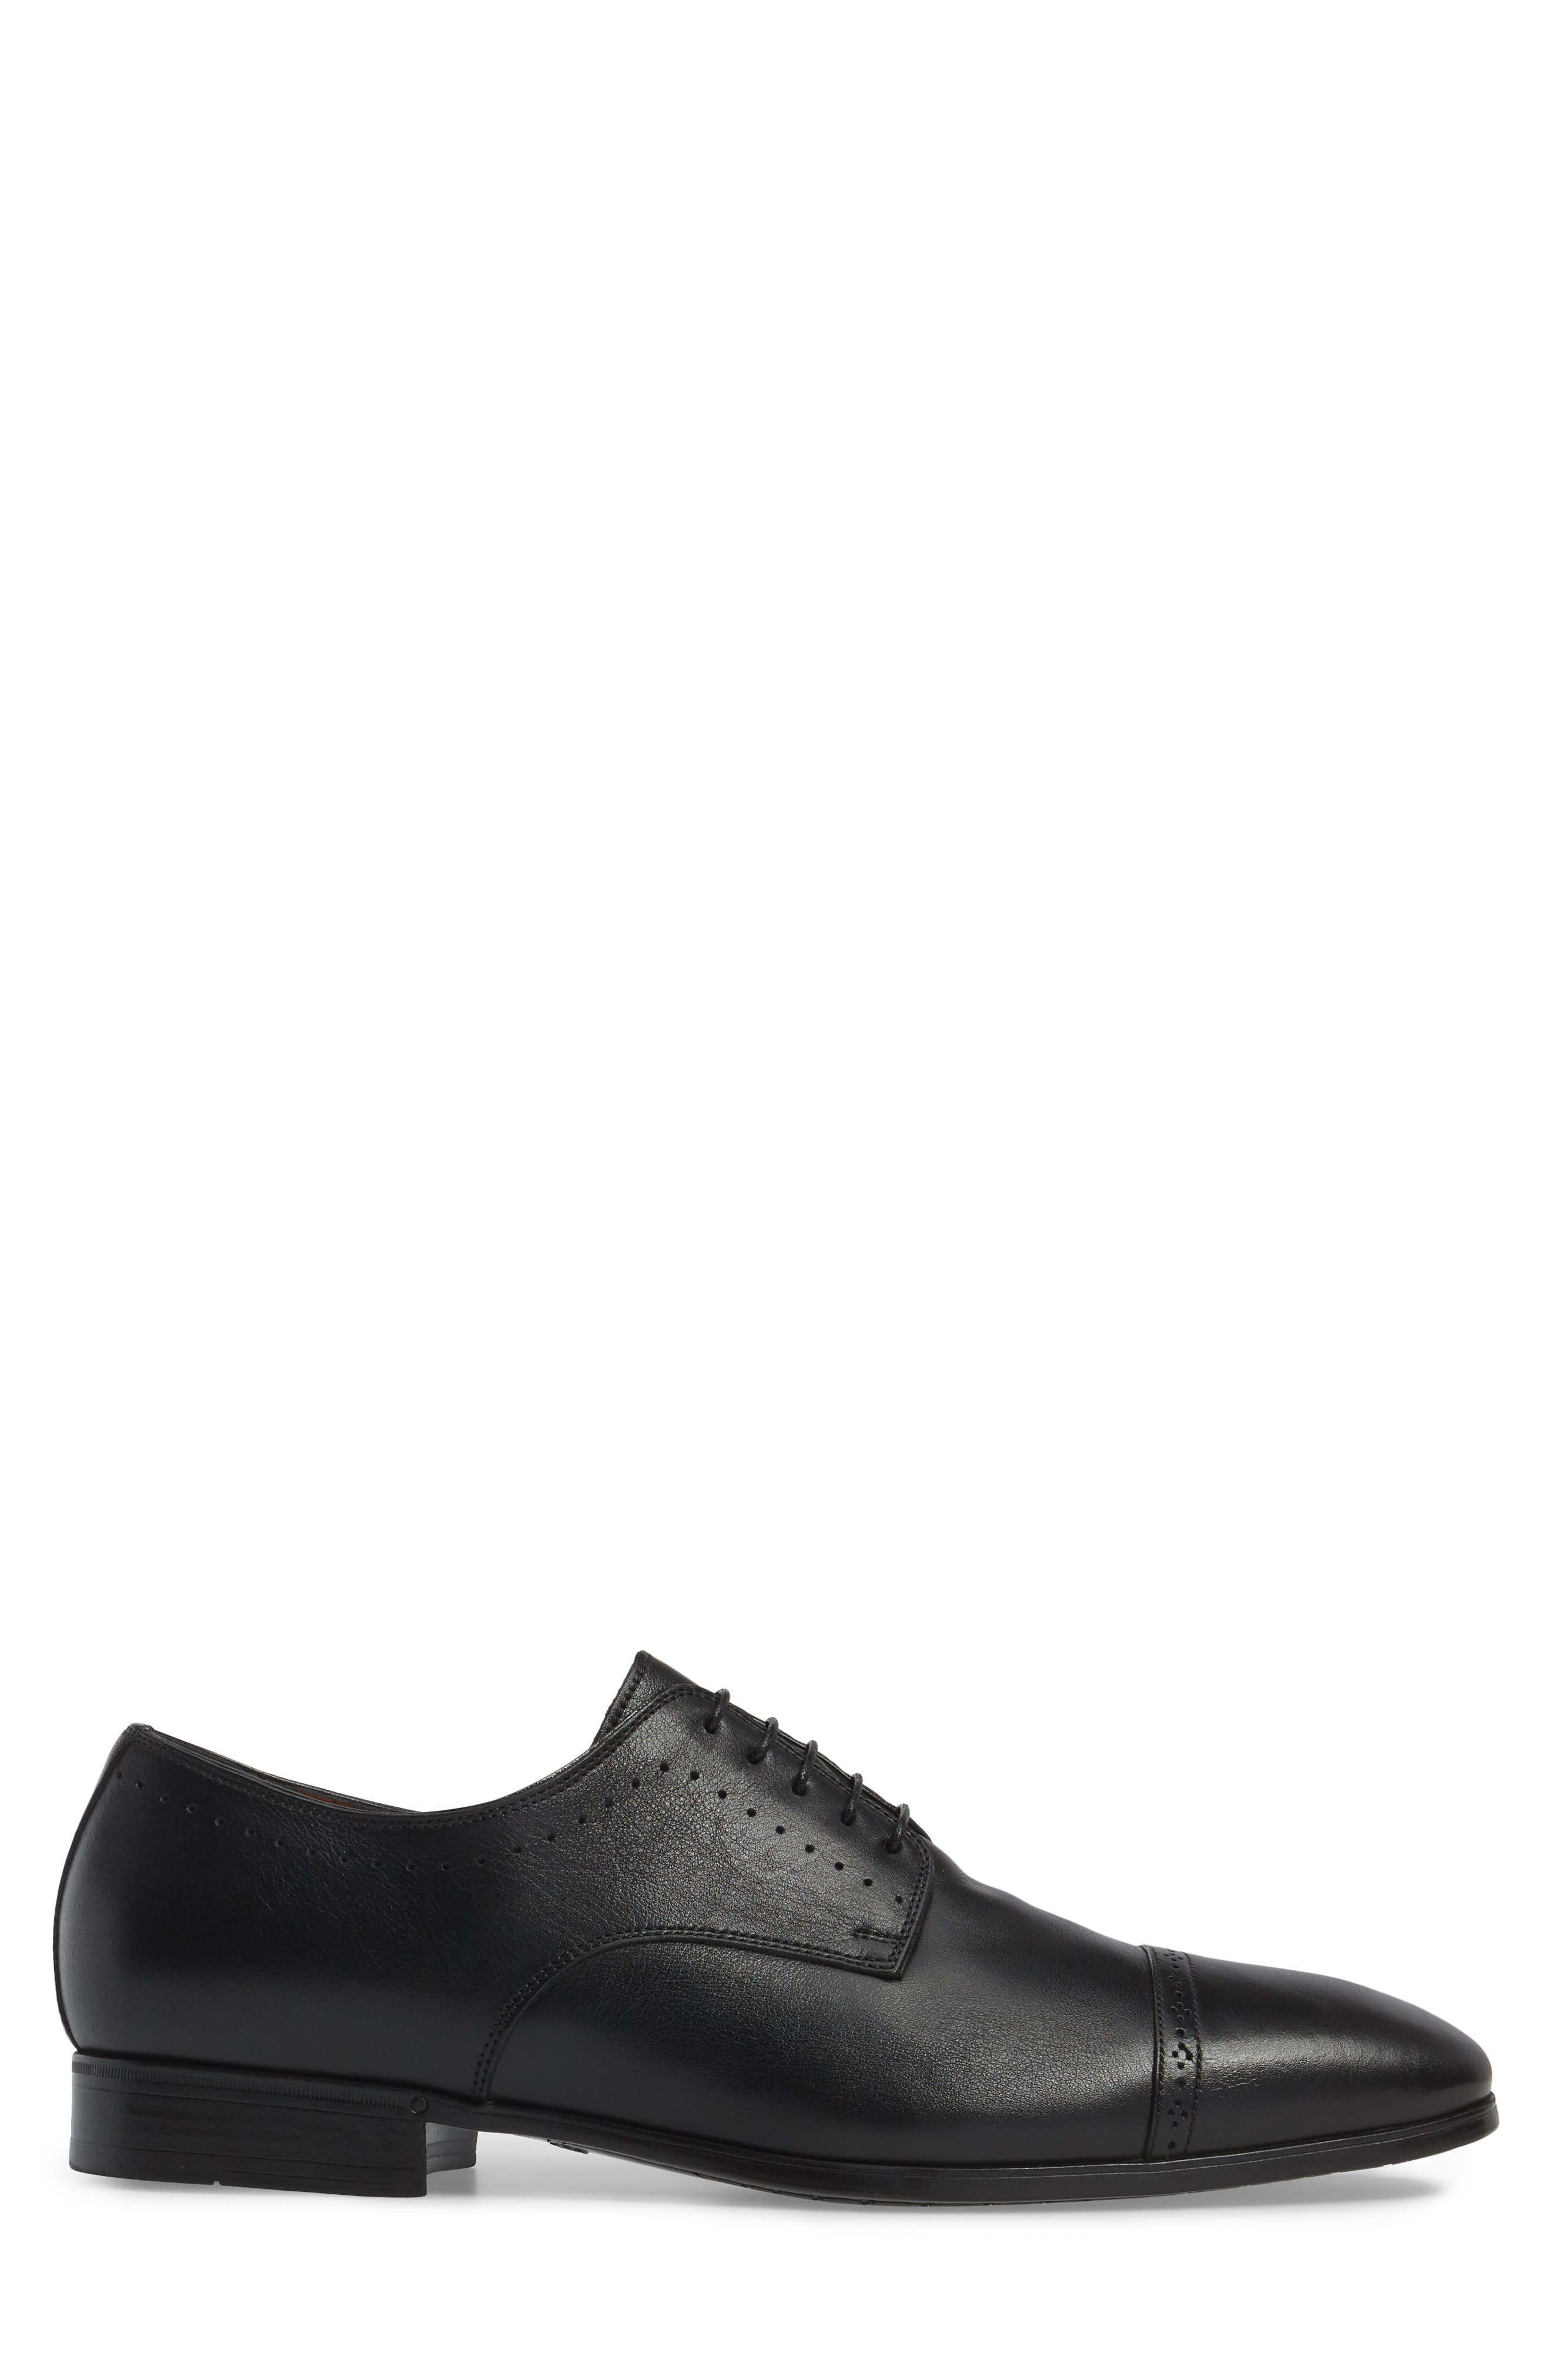 SANTONI, Gareth Cap Toe Derby, Alternate thumbnail 3, color, BLACK LEATHER